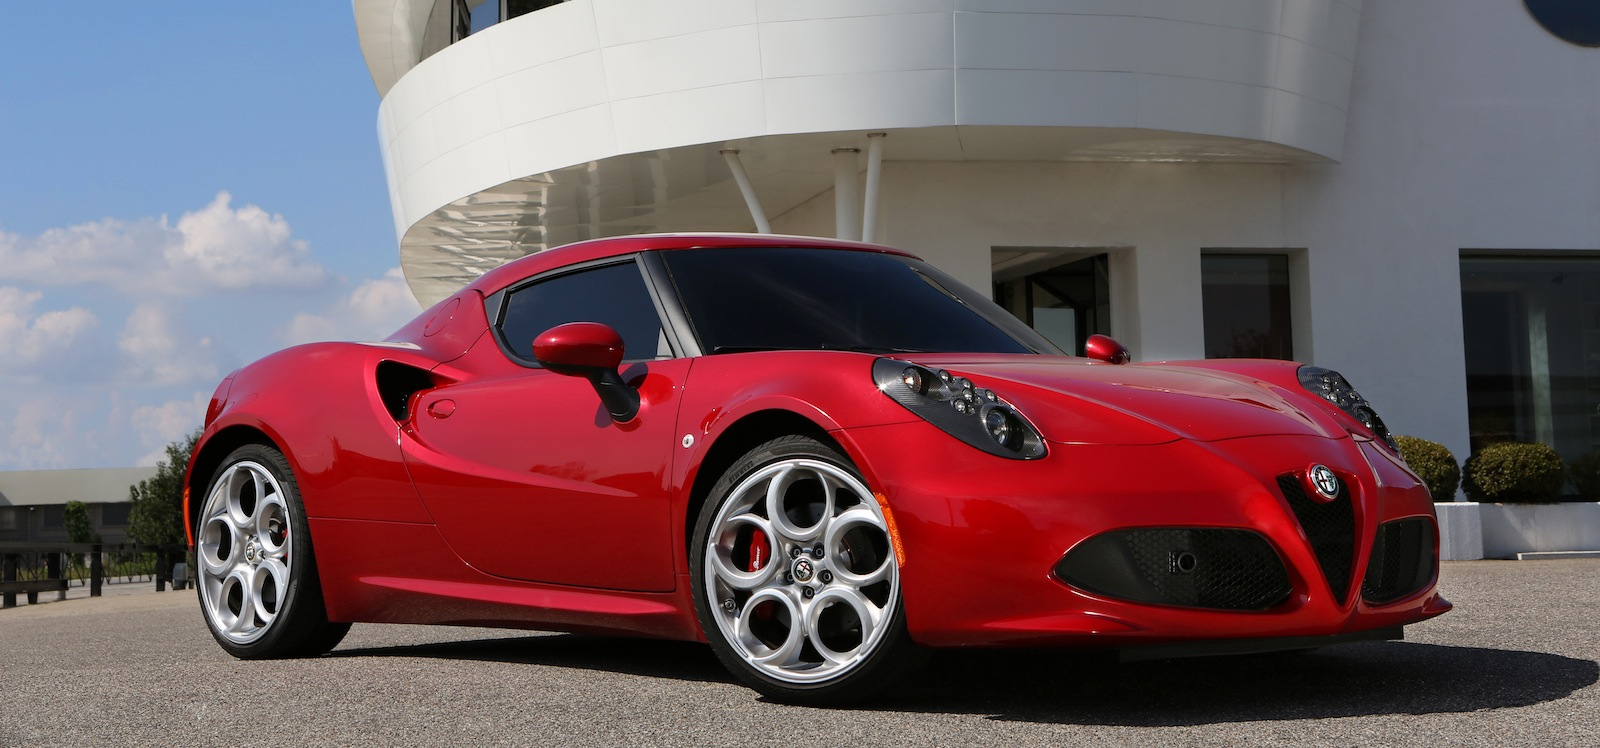 Alfa Romeo Models >> Alfa Romeo 4C Review - photos | CarAdvice